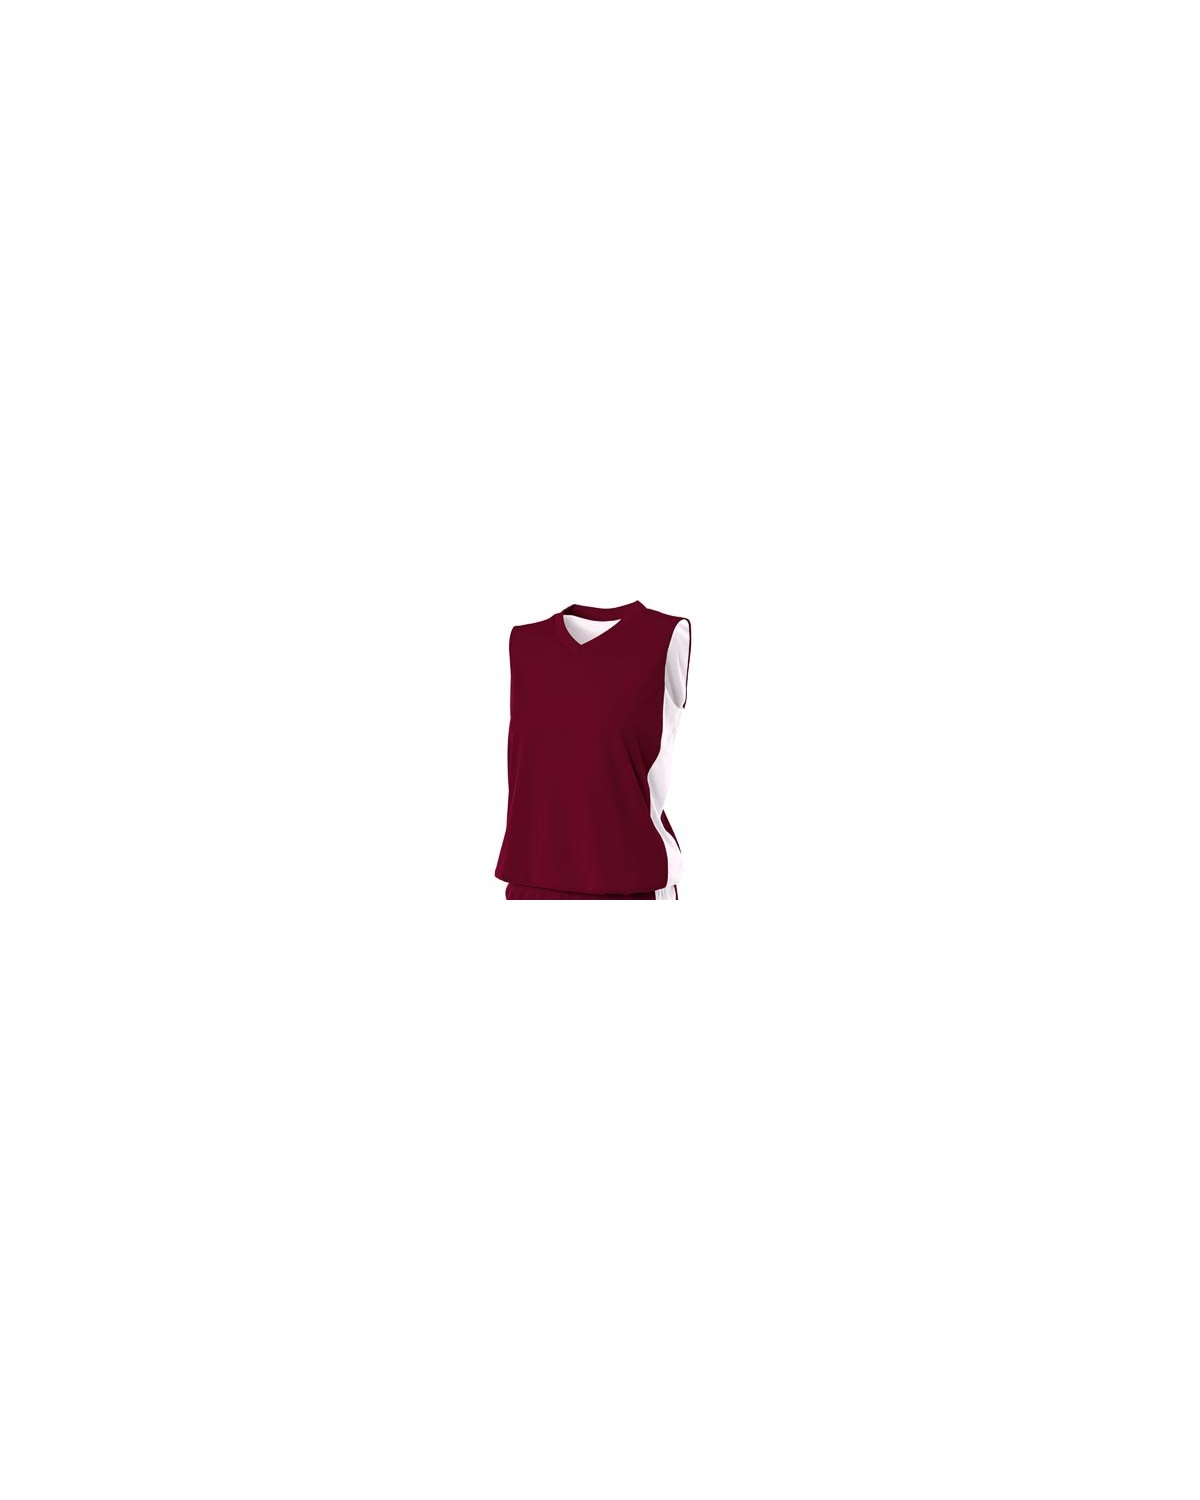 NW2320 A4 Drop Ship MAROON/WHITE